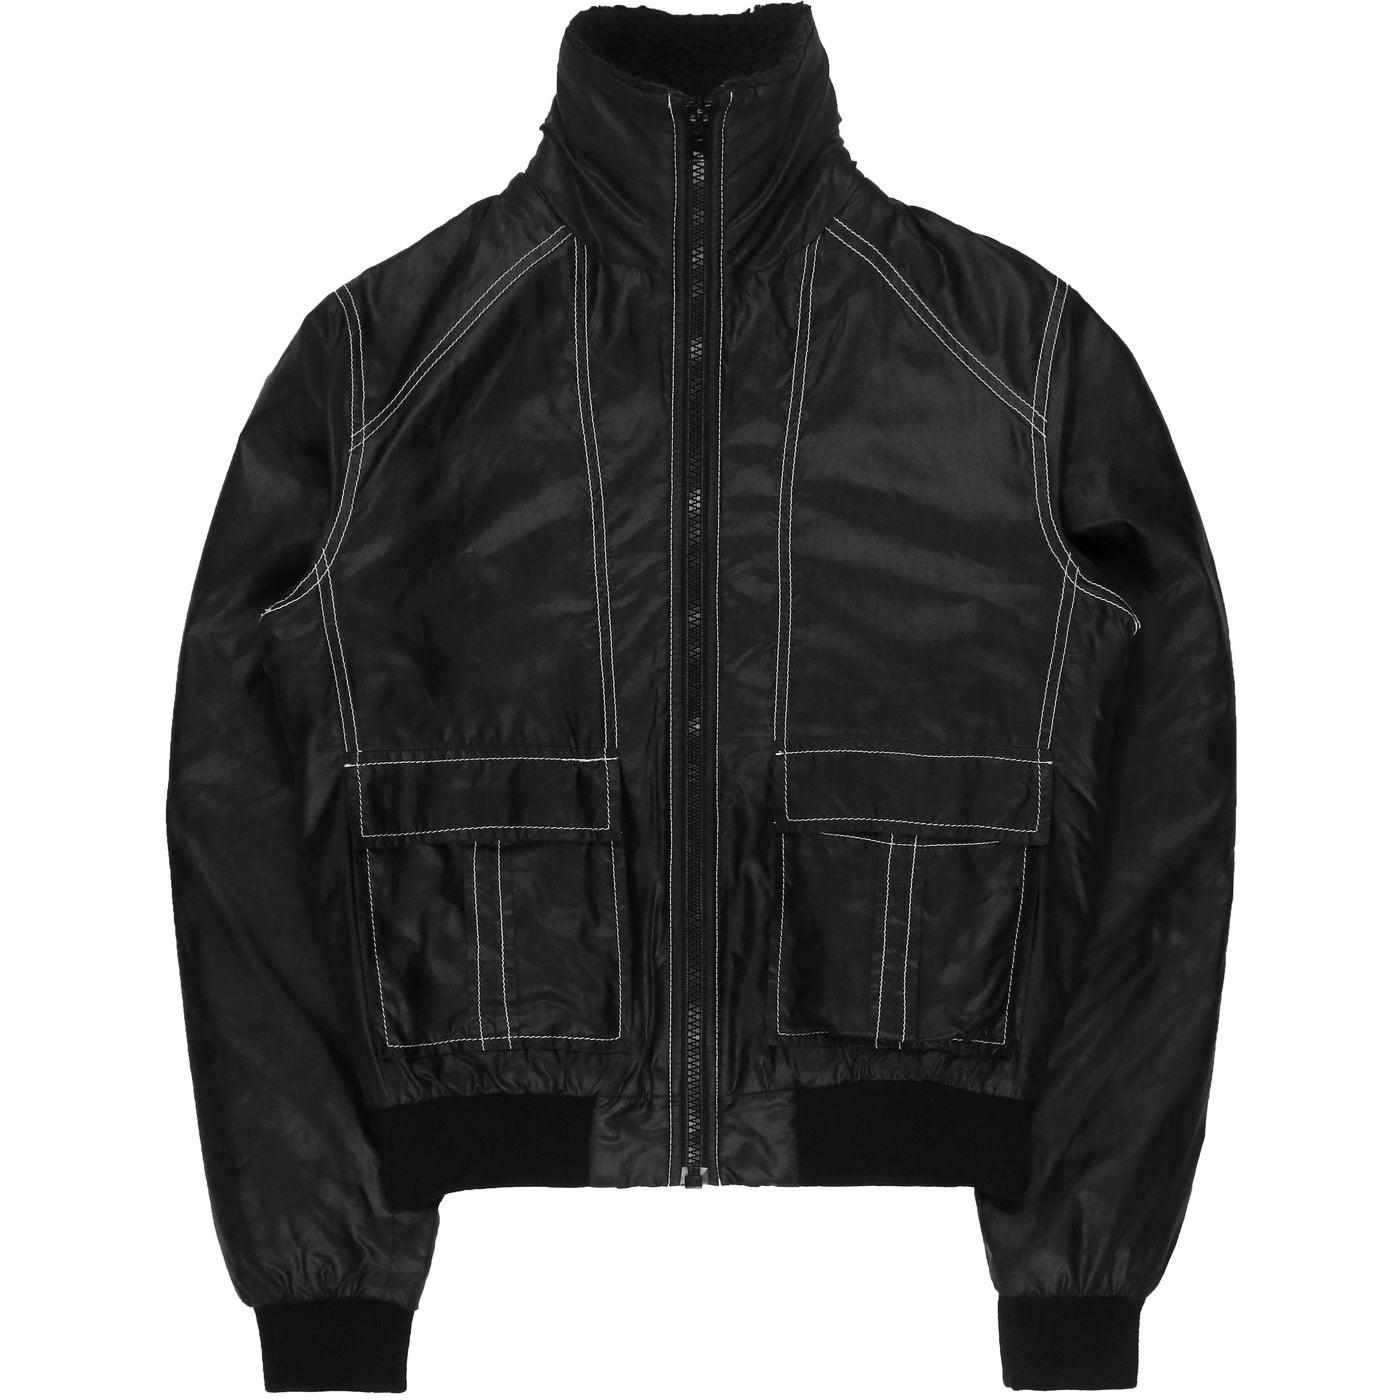 Maison Martin Margiela High Neck Contrast Stitched Nylon Jacket - AW07